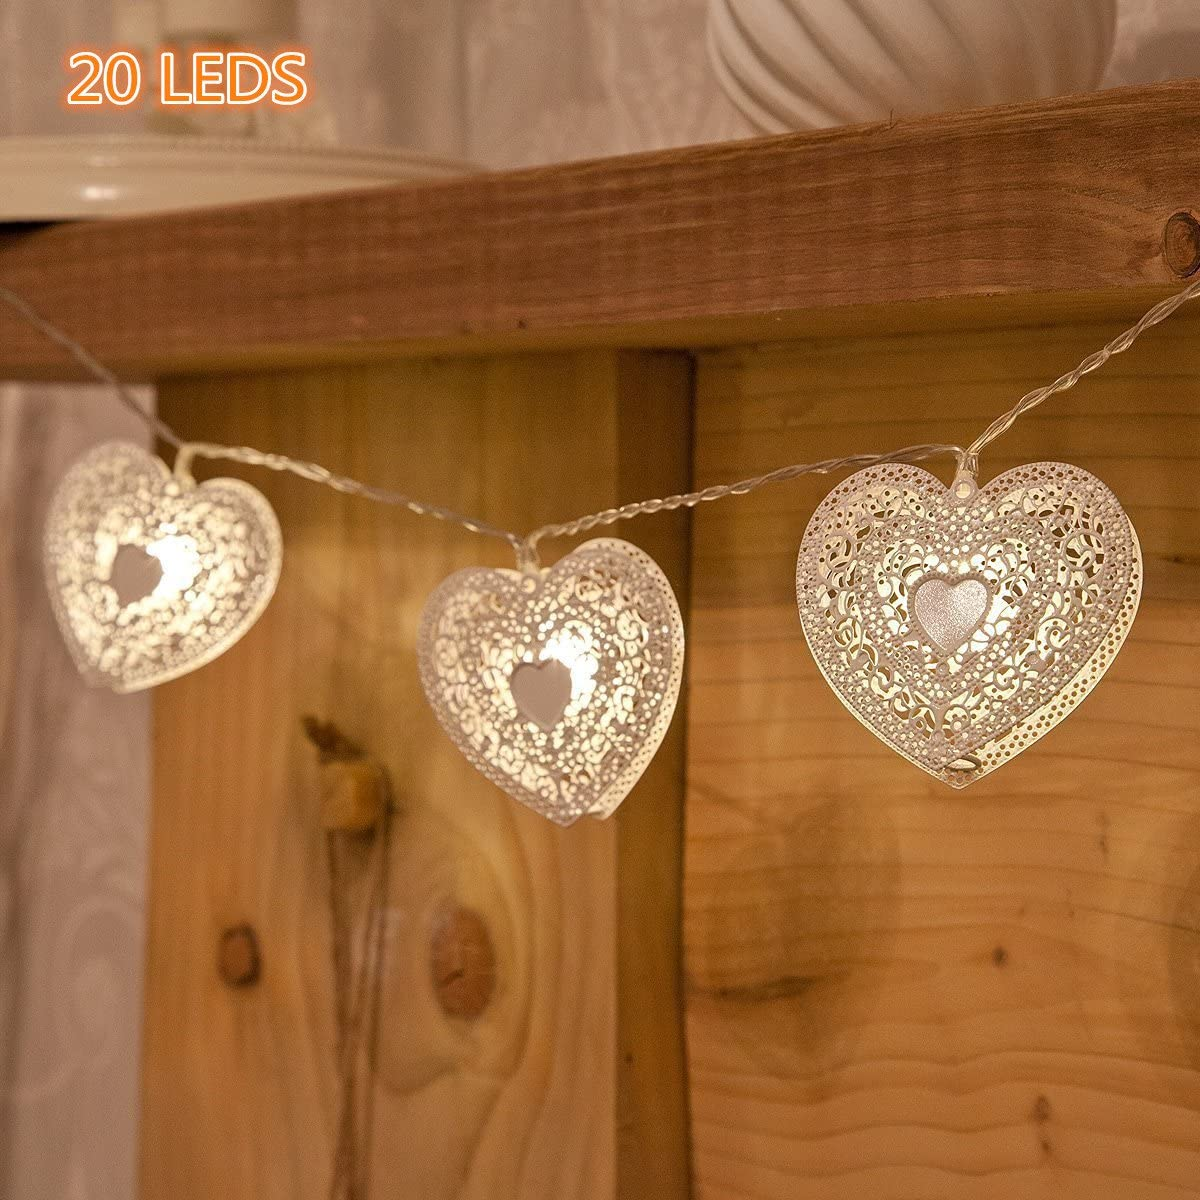 SPIRITUP 20 LED Love Heart String Lights, Christmas Lights, Indoor Outdoor Decorative Light, USB Powered, 16 Ft, Warm White Light – for Patio Garden Party Xmas Tree Wedding Decoration